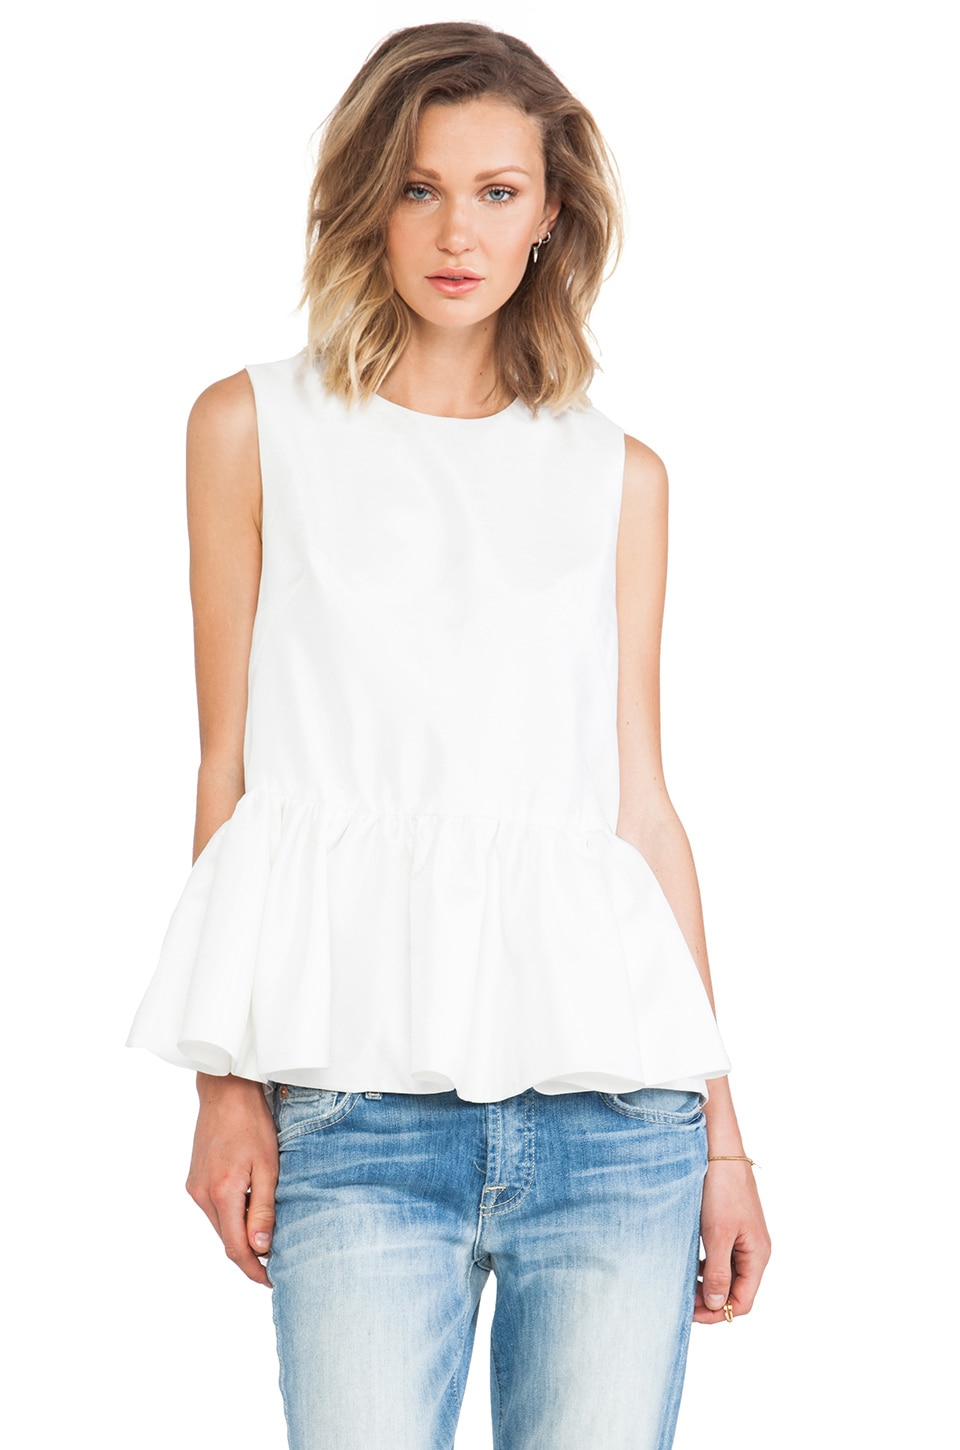 C/MEO With Fire Top in Ivory